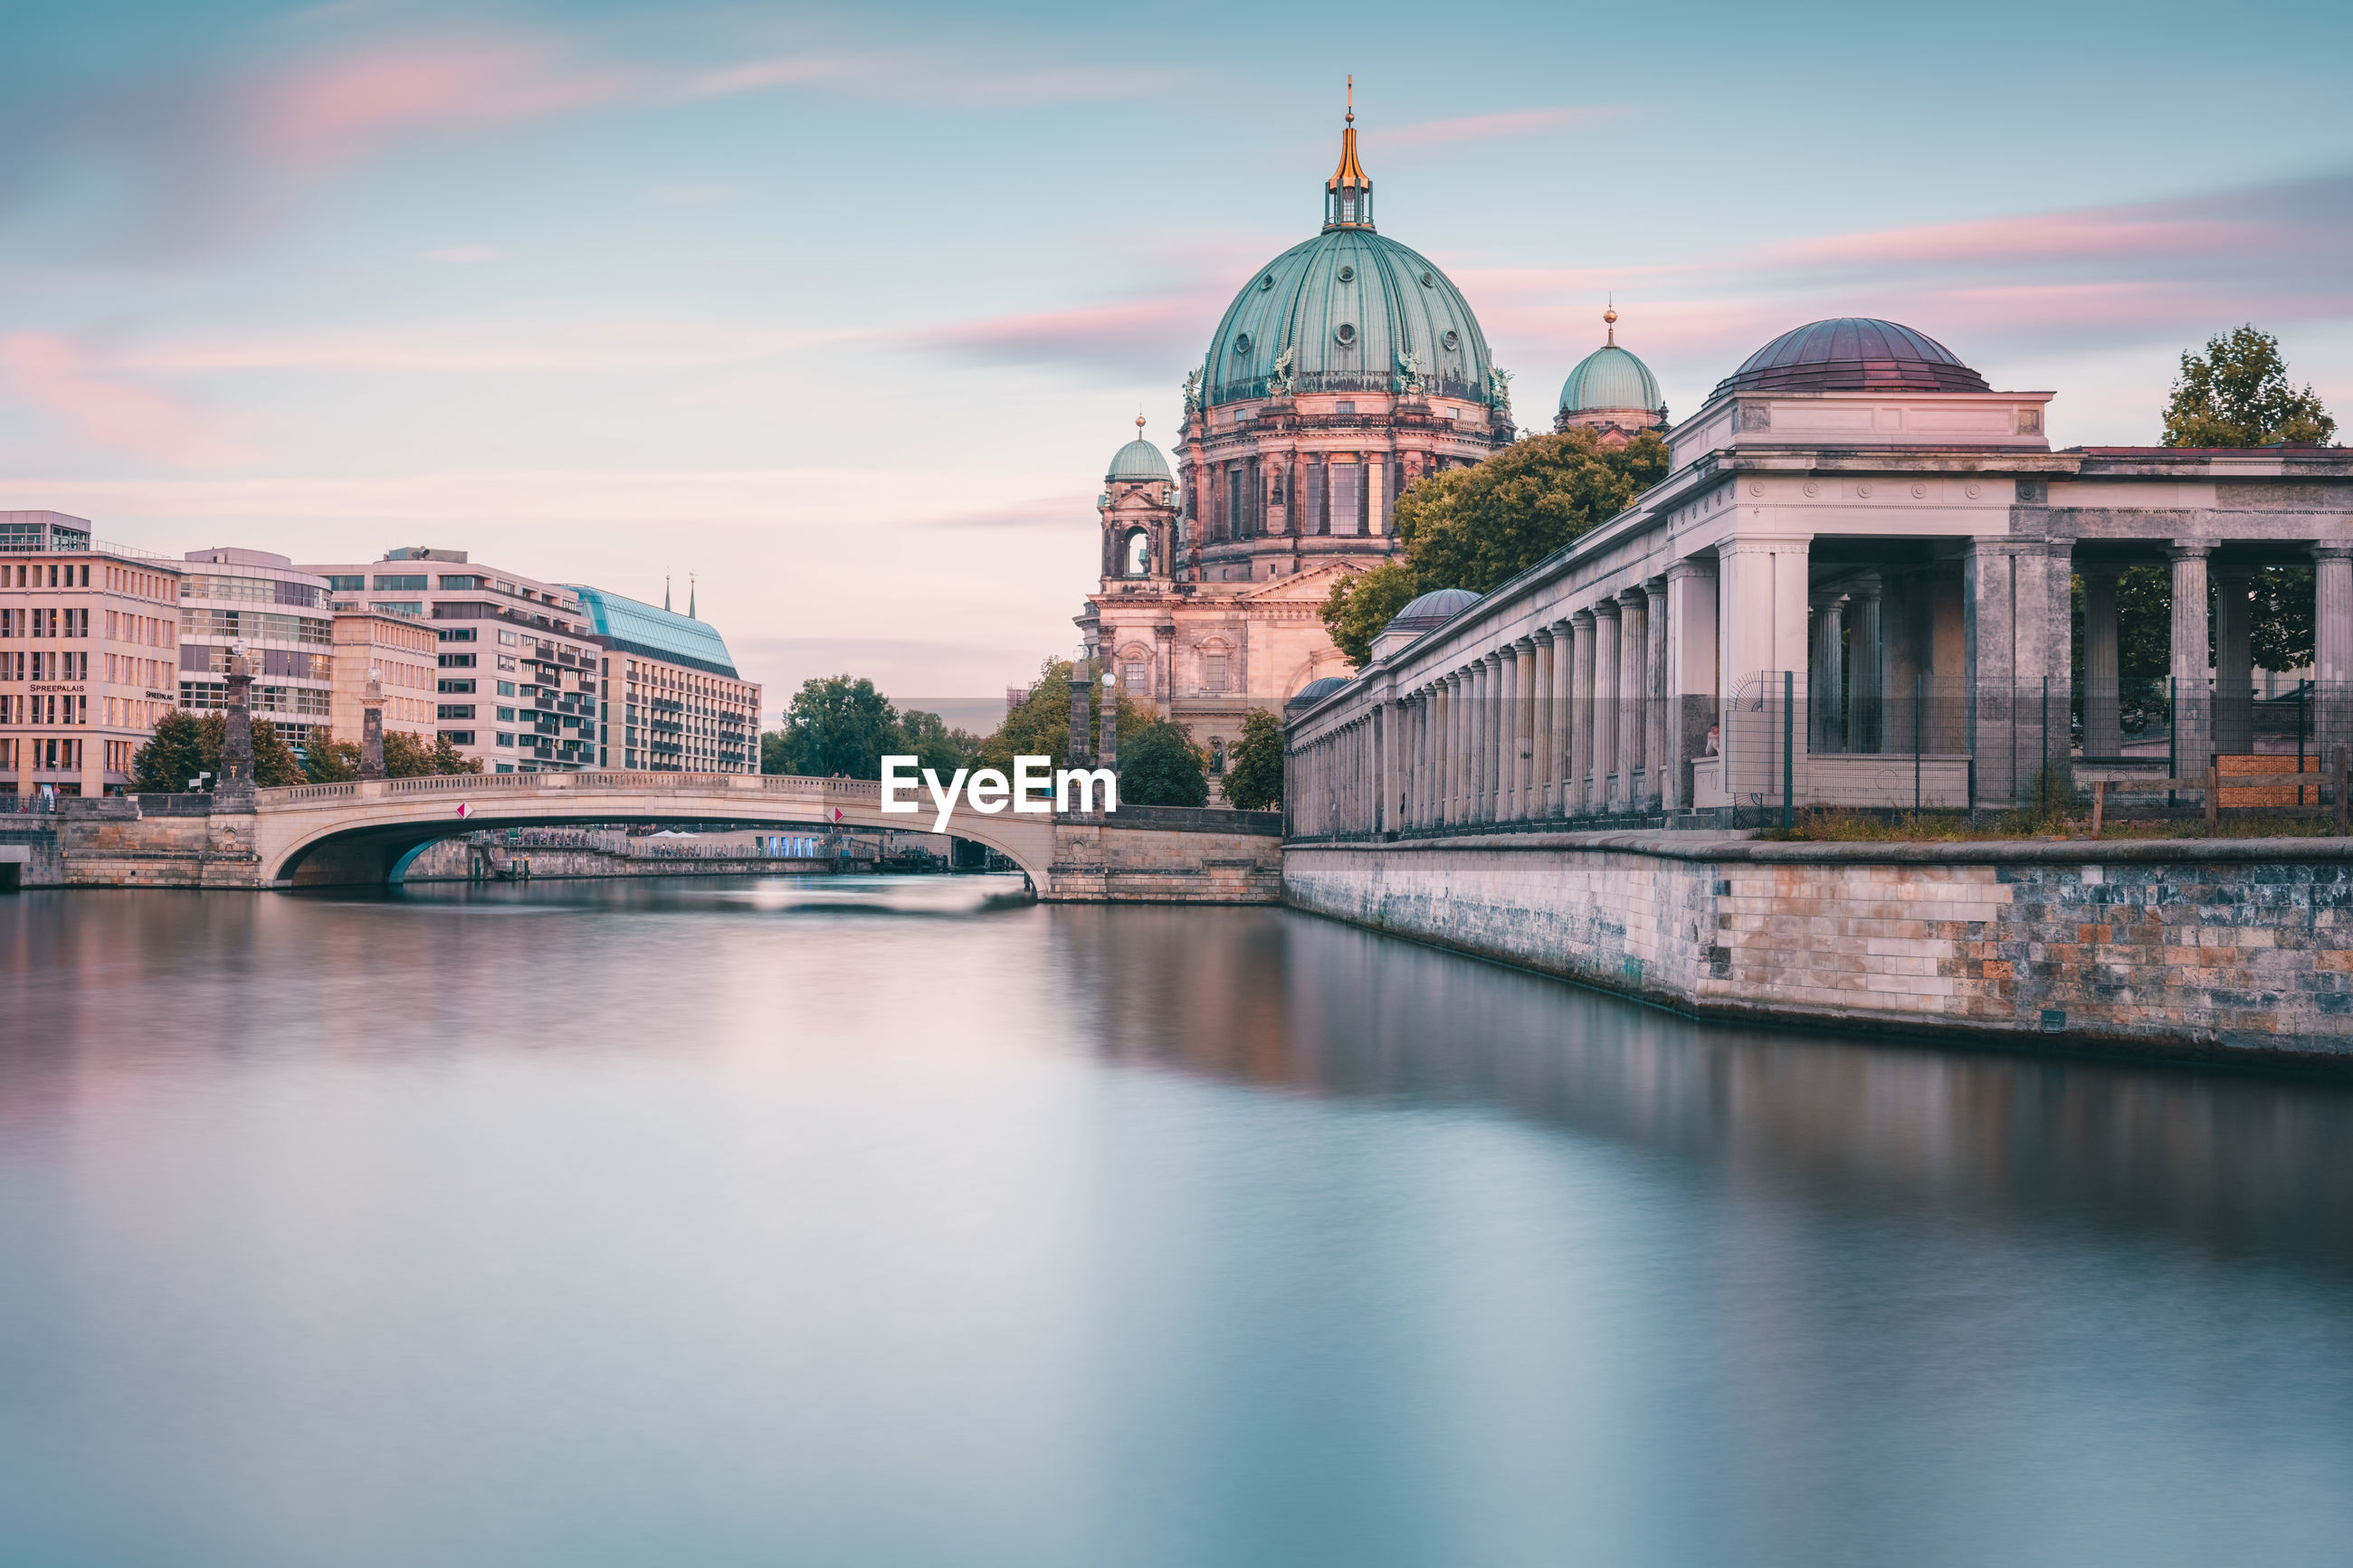 River by berlin cathedral against sky